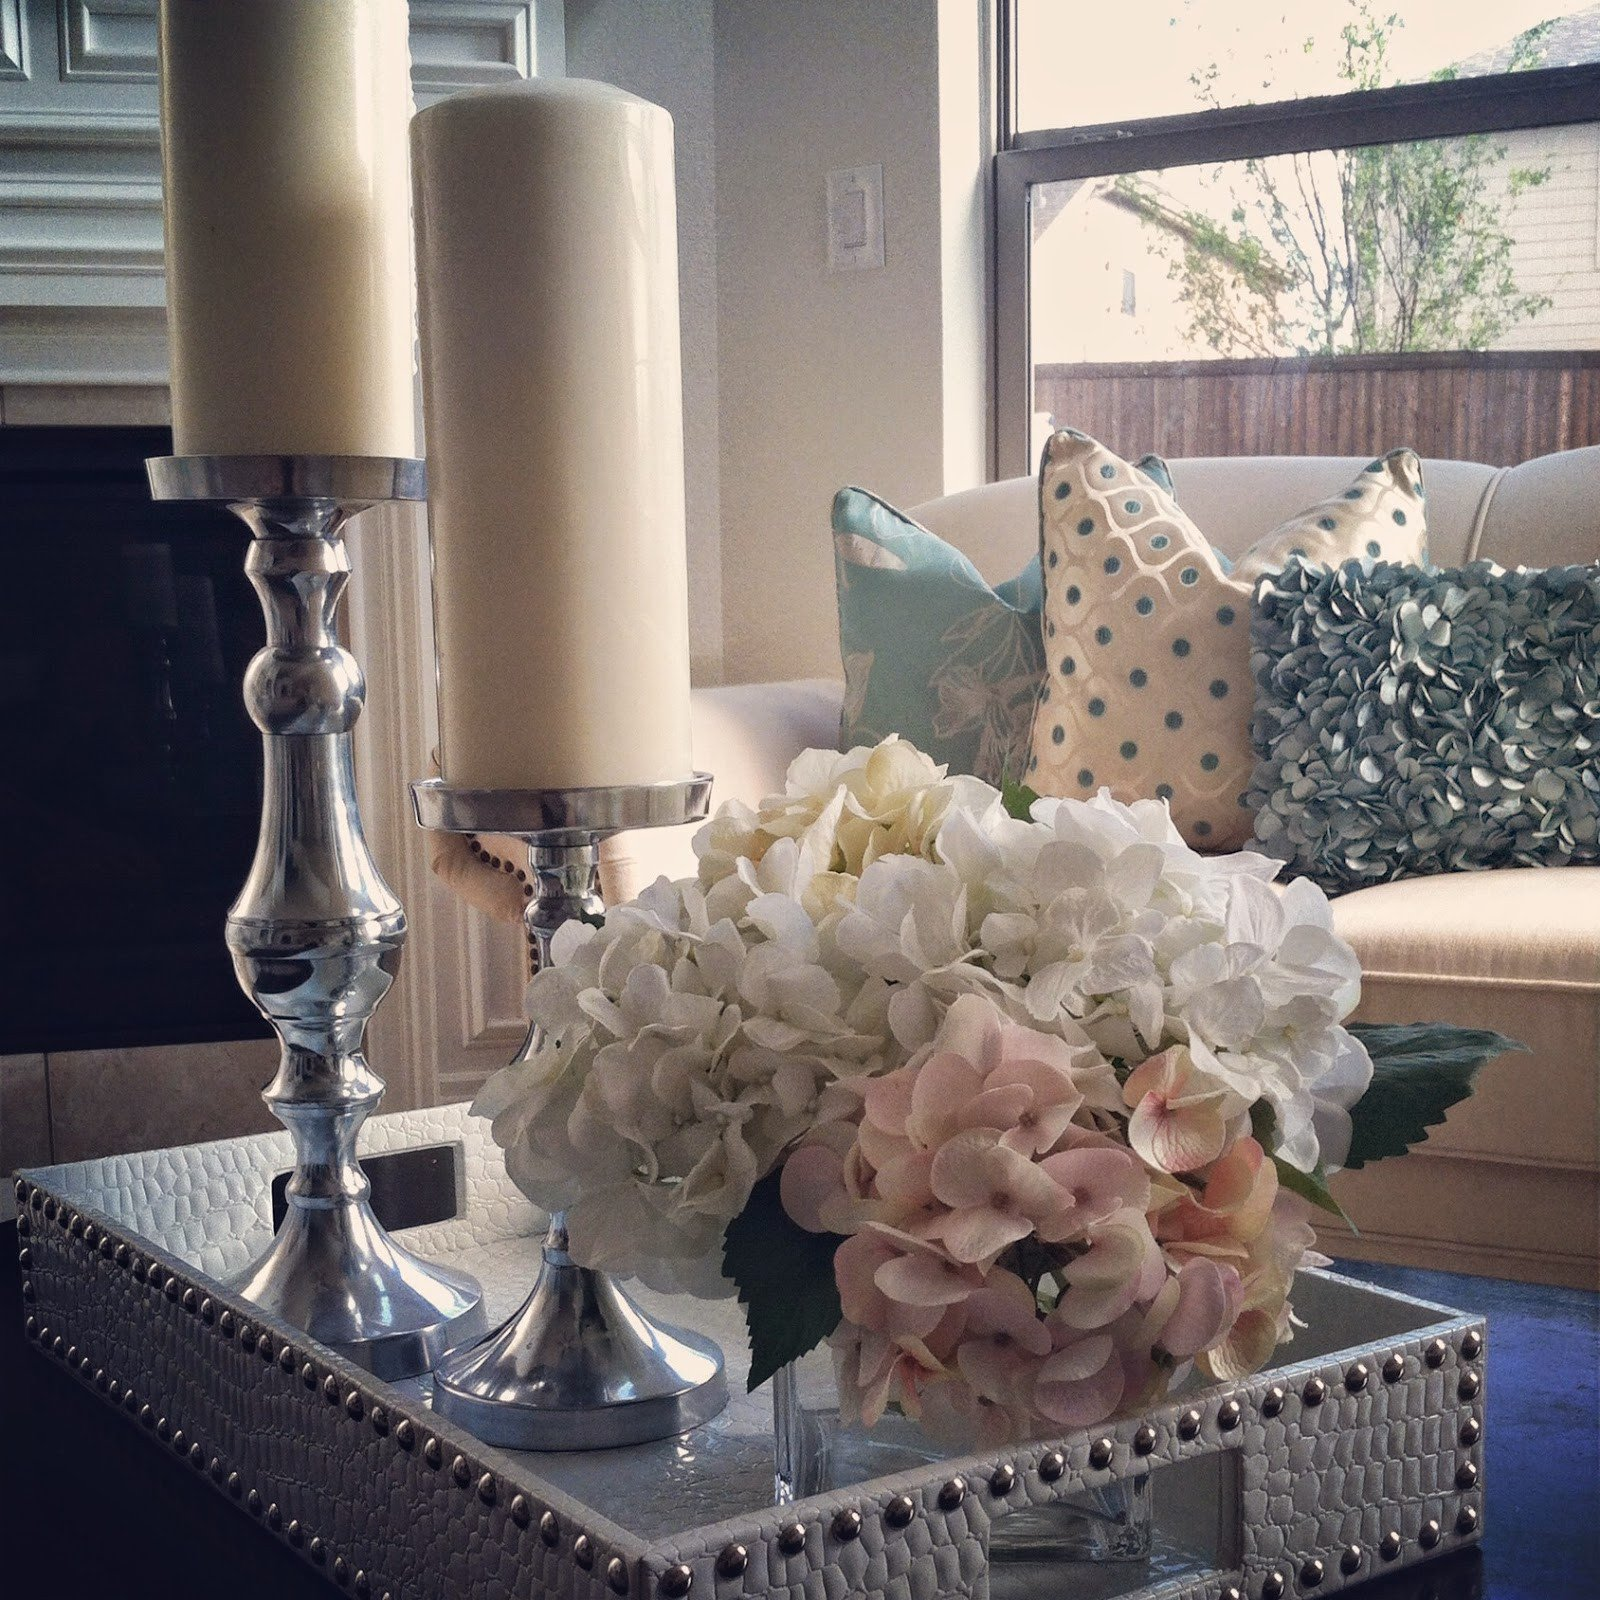 Candle Decor for Coffee Table Luxury Nissa Lynn Interiors the Coffee Table